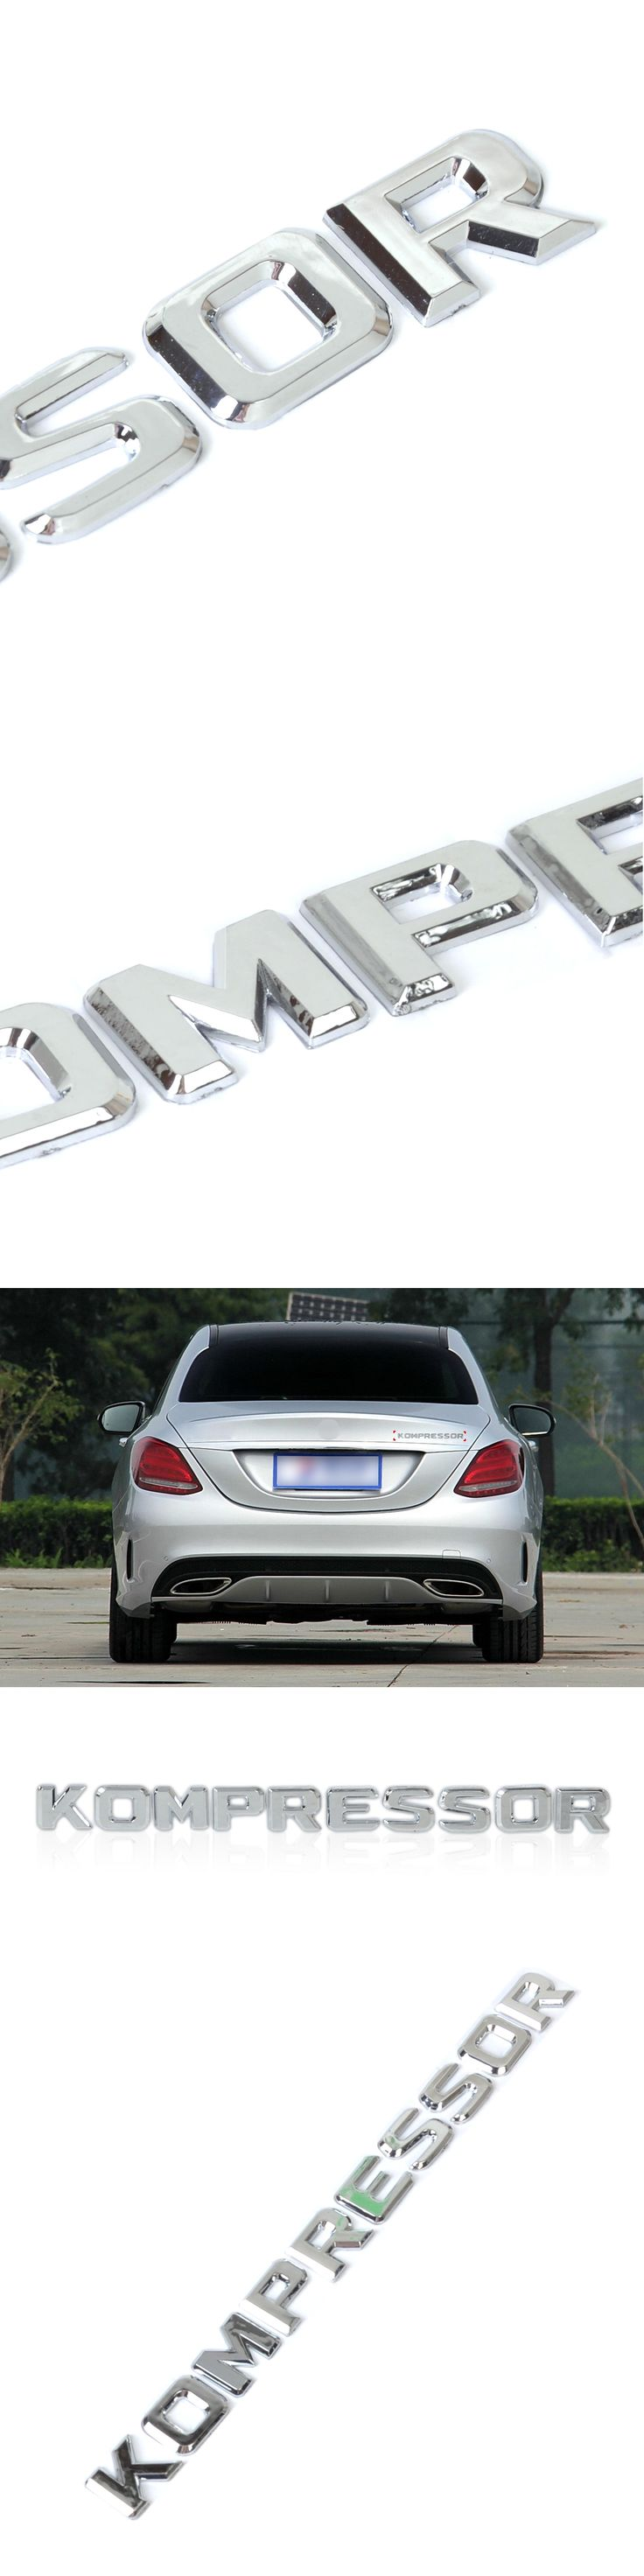 DWCX 3D Chrome KOMPRESSOR Badge Emblem Sticker for Mercedes Benz SLK CLK SL CLS ML GL A B C E S Class CL55 SLK200 C180 CLC200